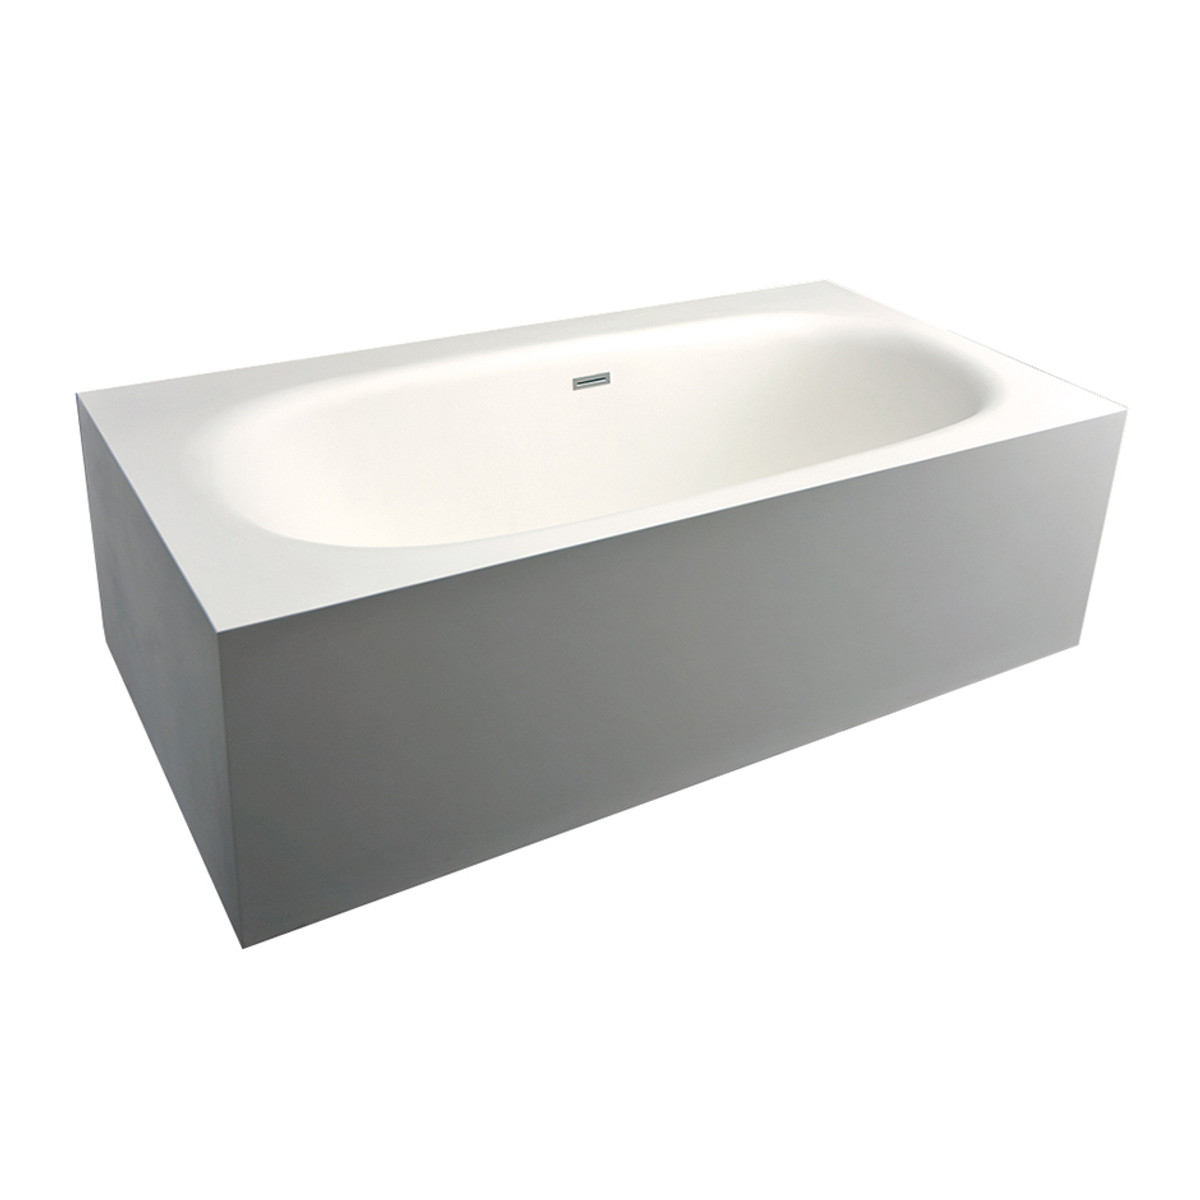 "TUB03 Aquagrande Bathtub 71""W"